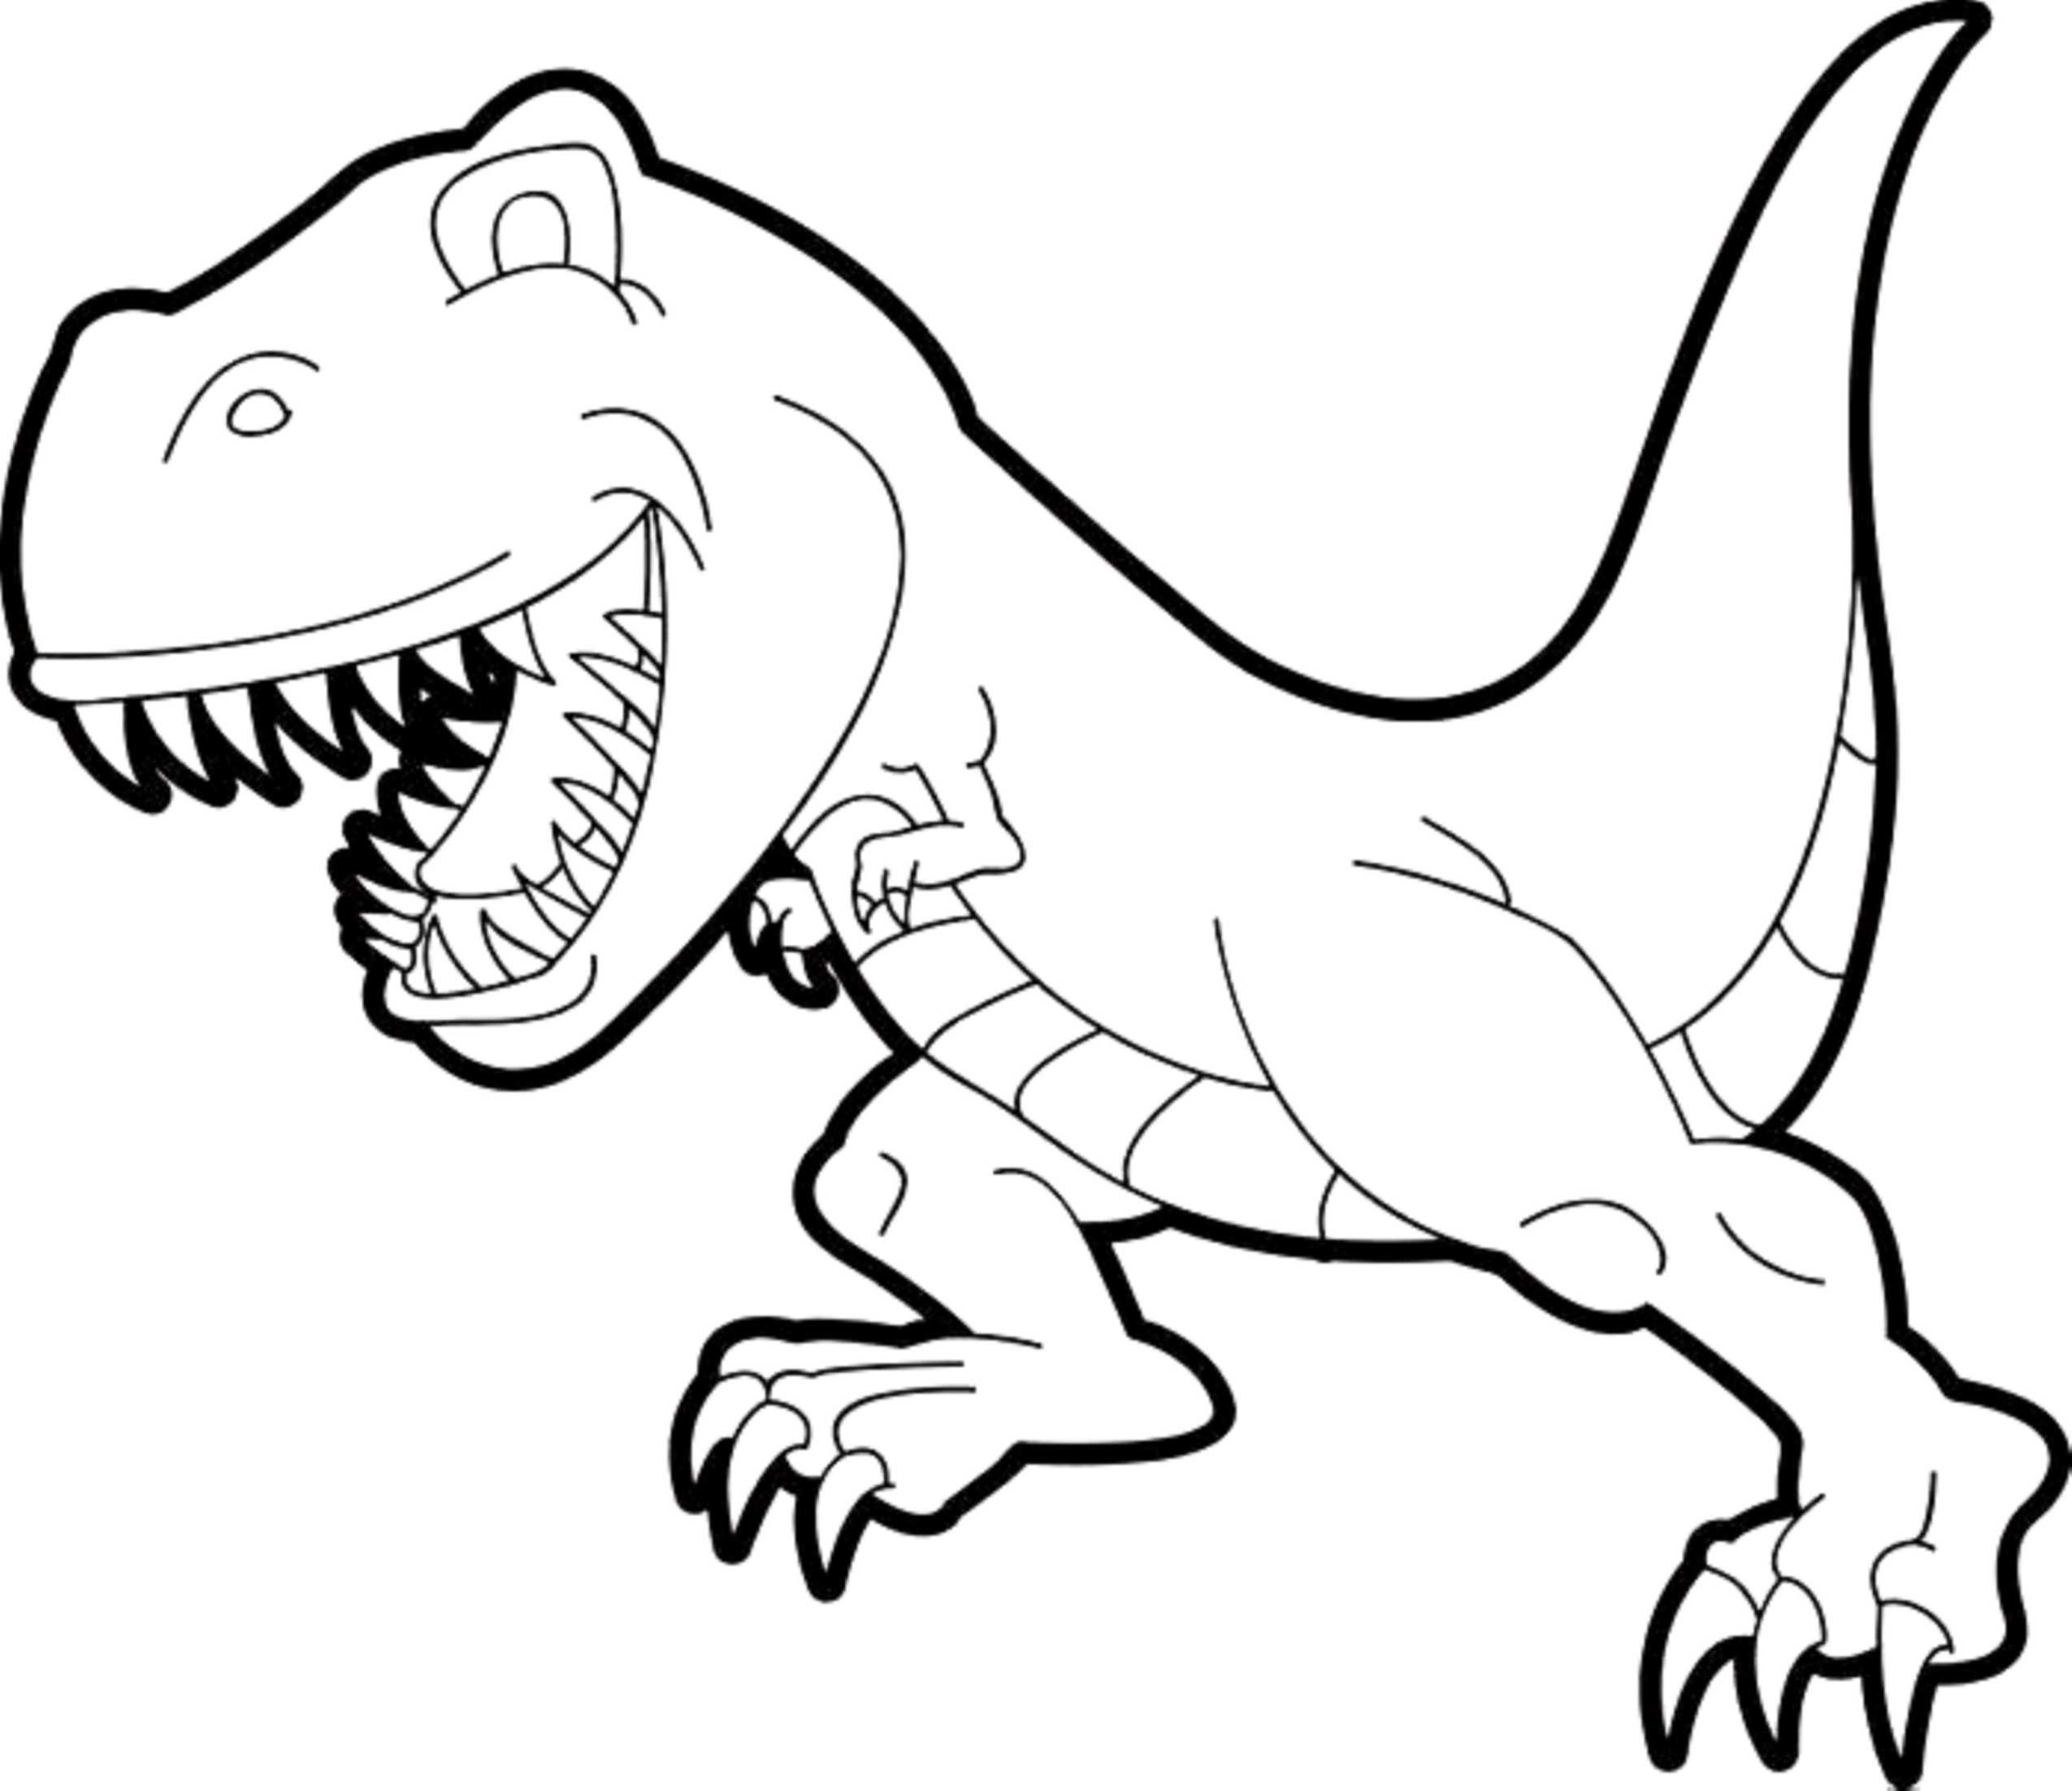 Simple T Rex Coloring Pages Dinosaur Coloring Pages Dinosaur Coloring Animal Coloring Pages